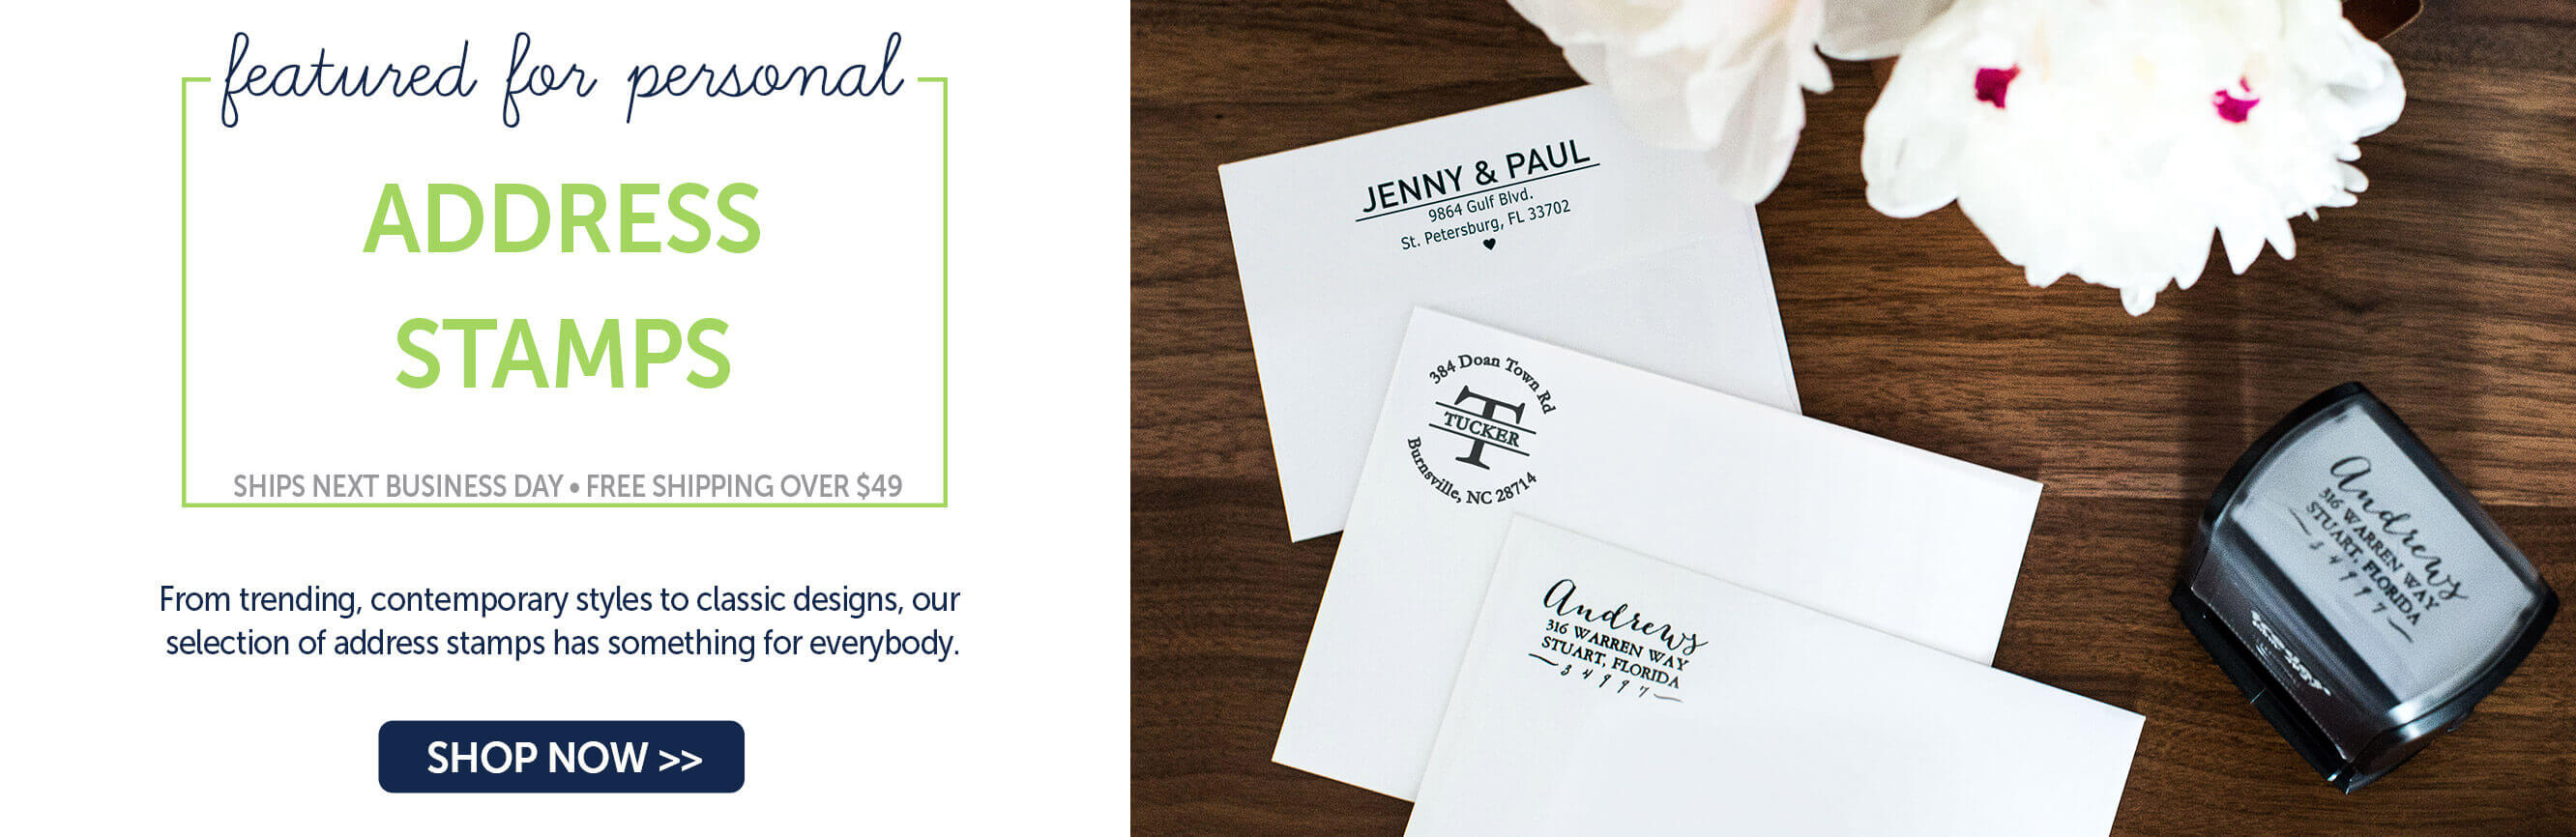 Personalized Address Stamps